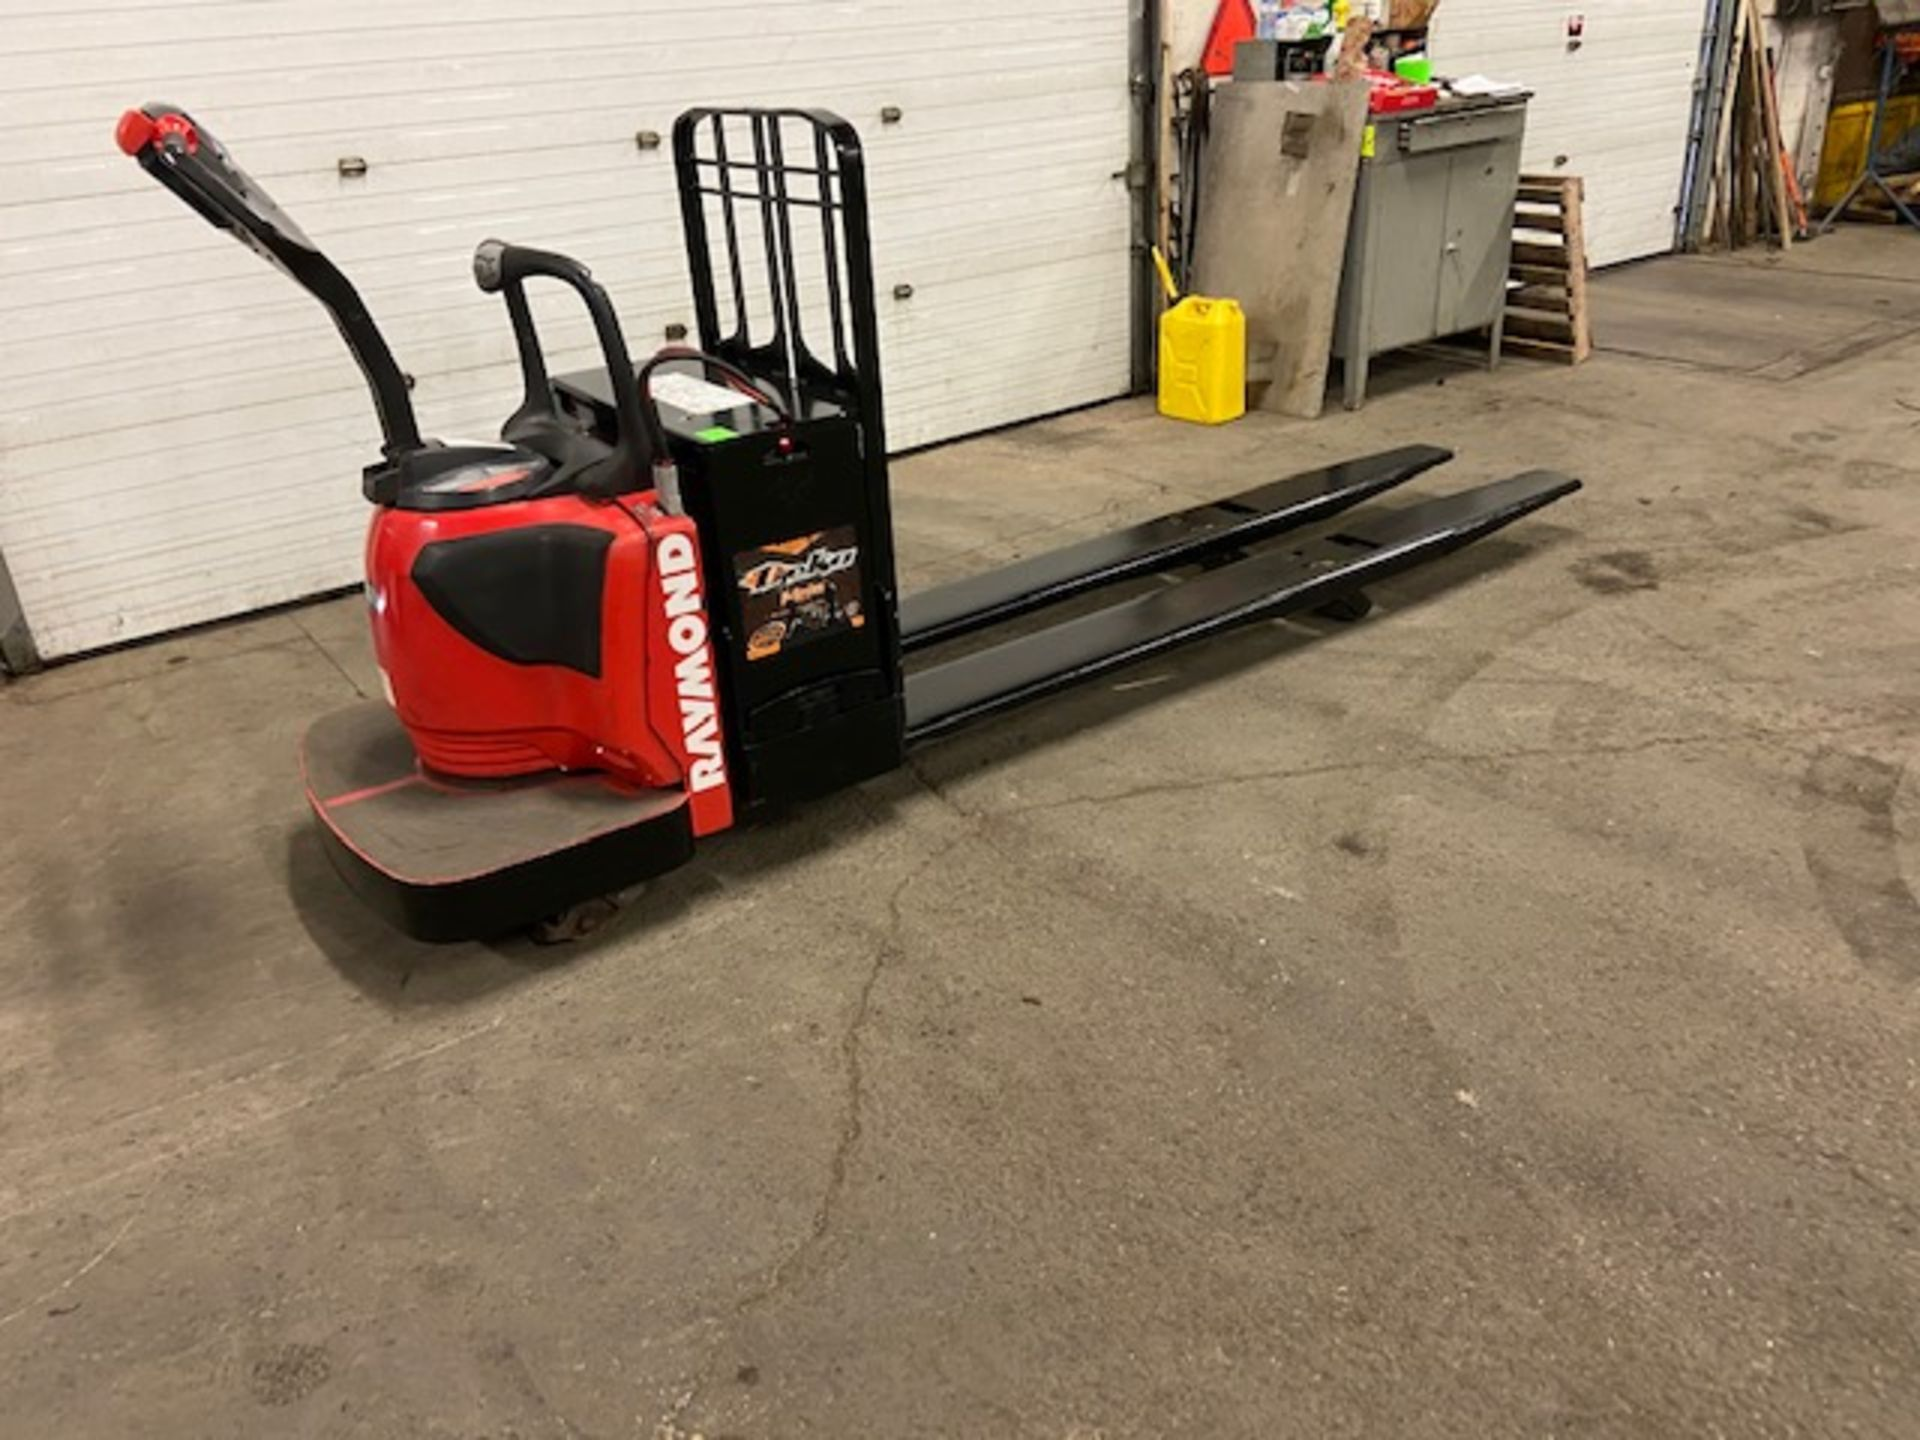 2012 Raymond Electric Ride on Powered Pallet Cart Lift 8000lbs capacity 8' Long LOW HOURS